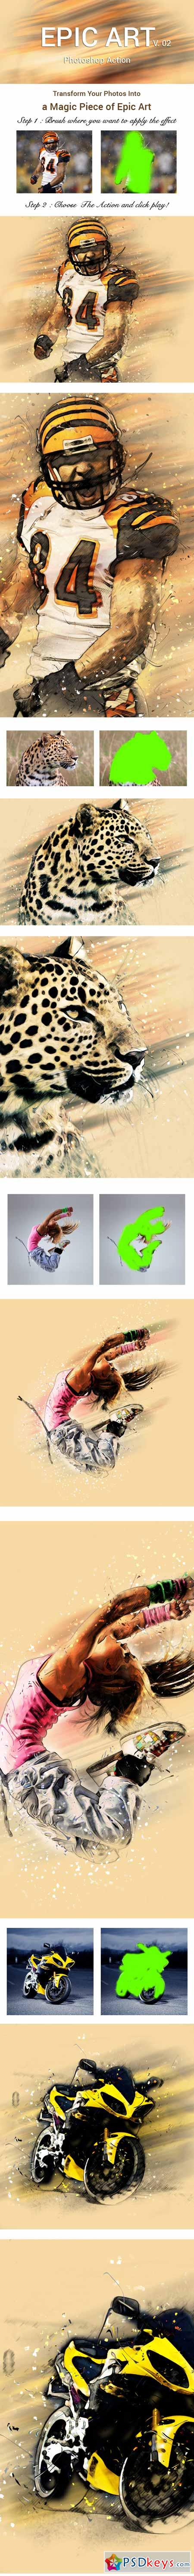 Epic Art 2 Photoshop Action 11190522